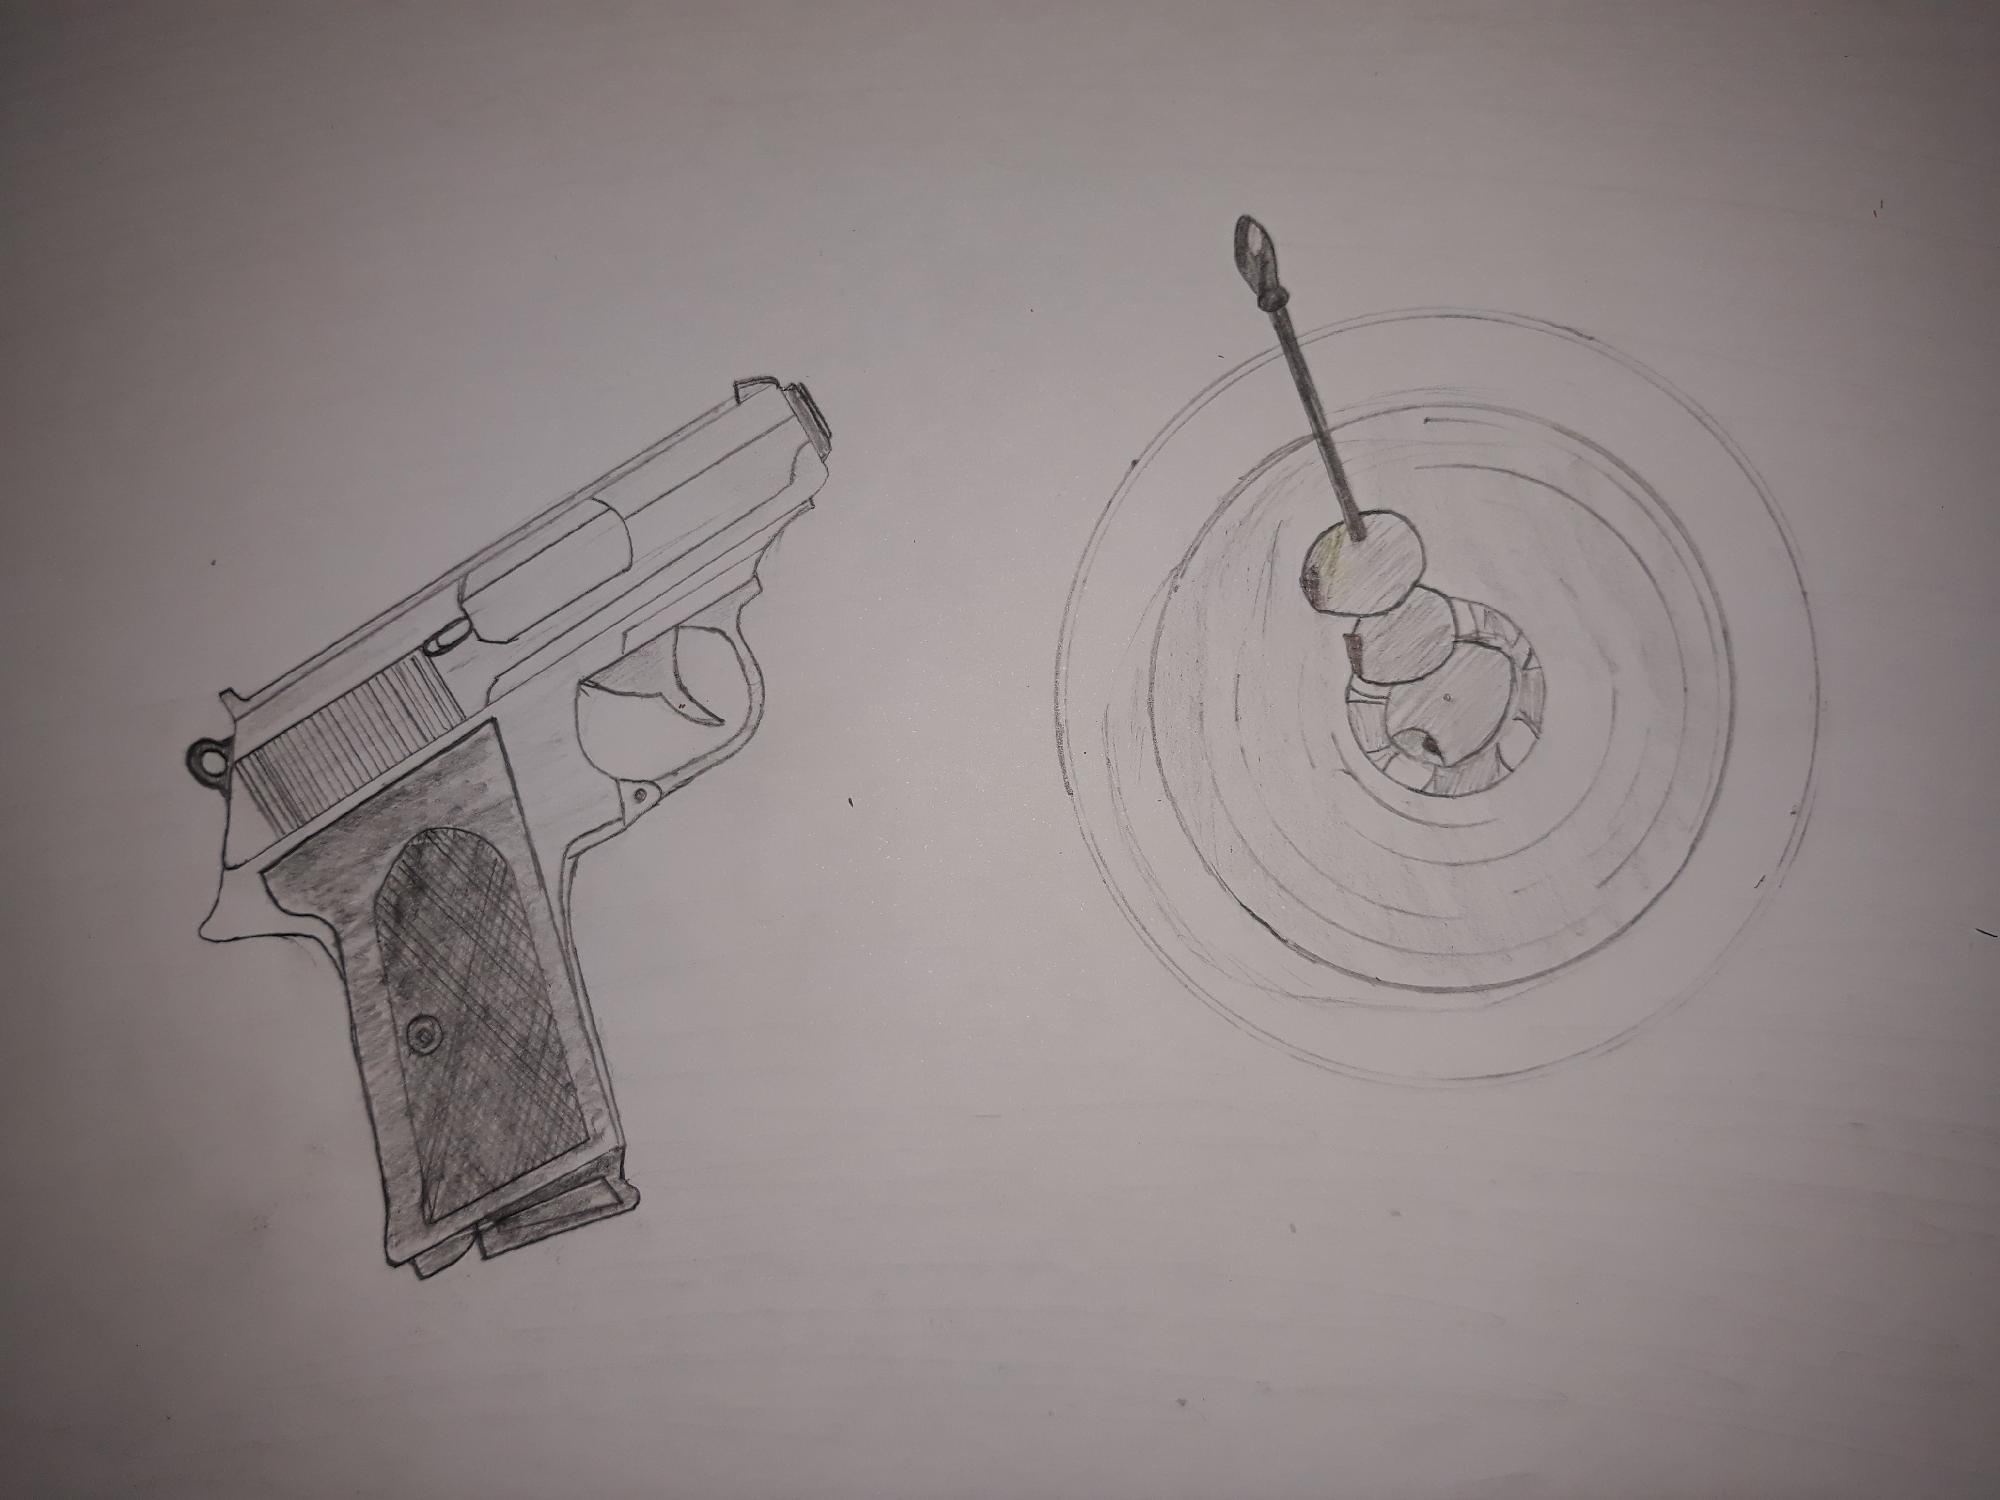 What do you think about my fanmade 007 drawing?